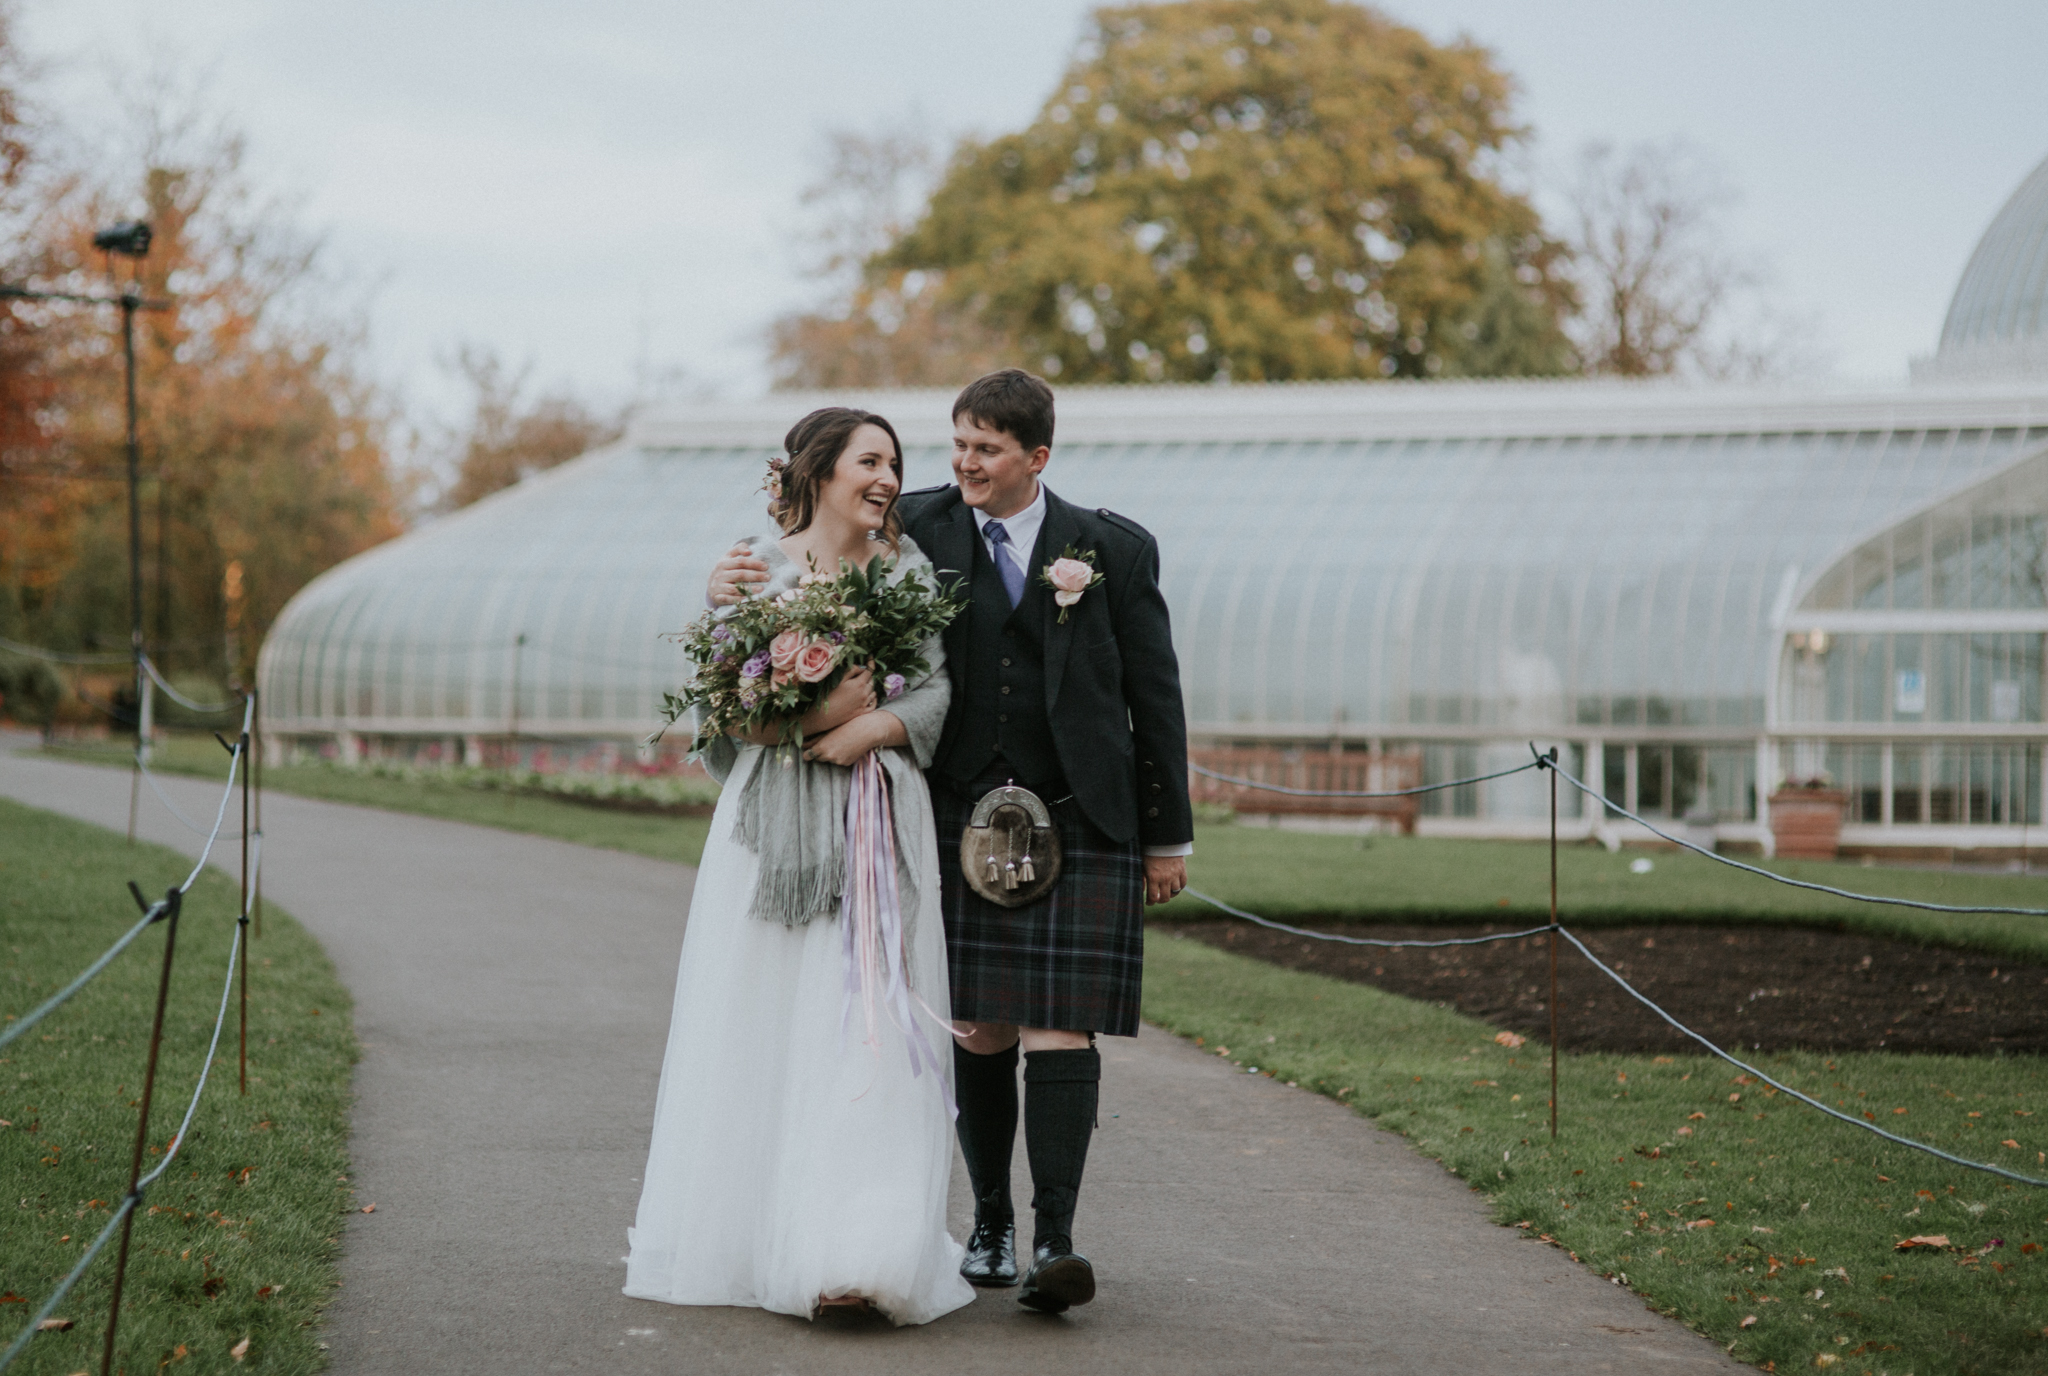 Modern wedding photography in Scotland, Glasgow and Edinburgh